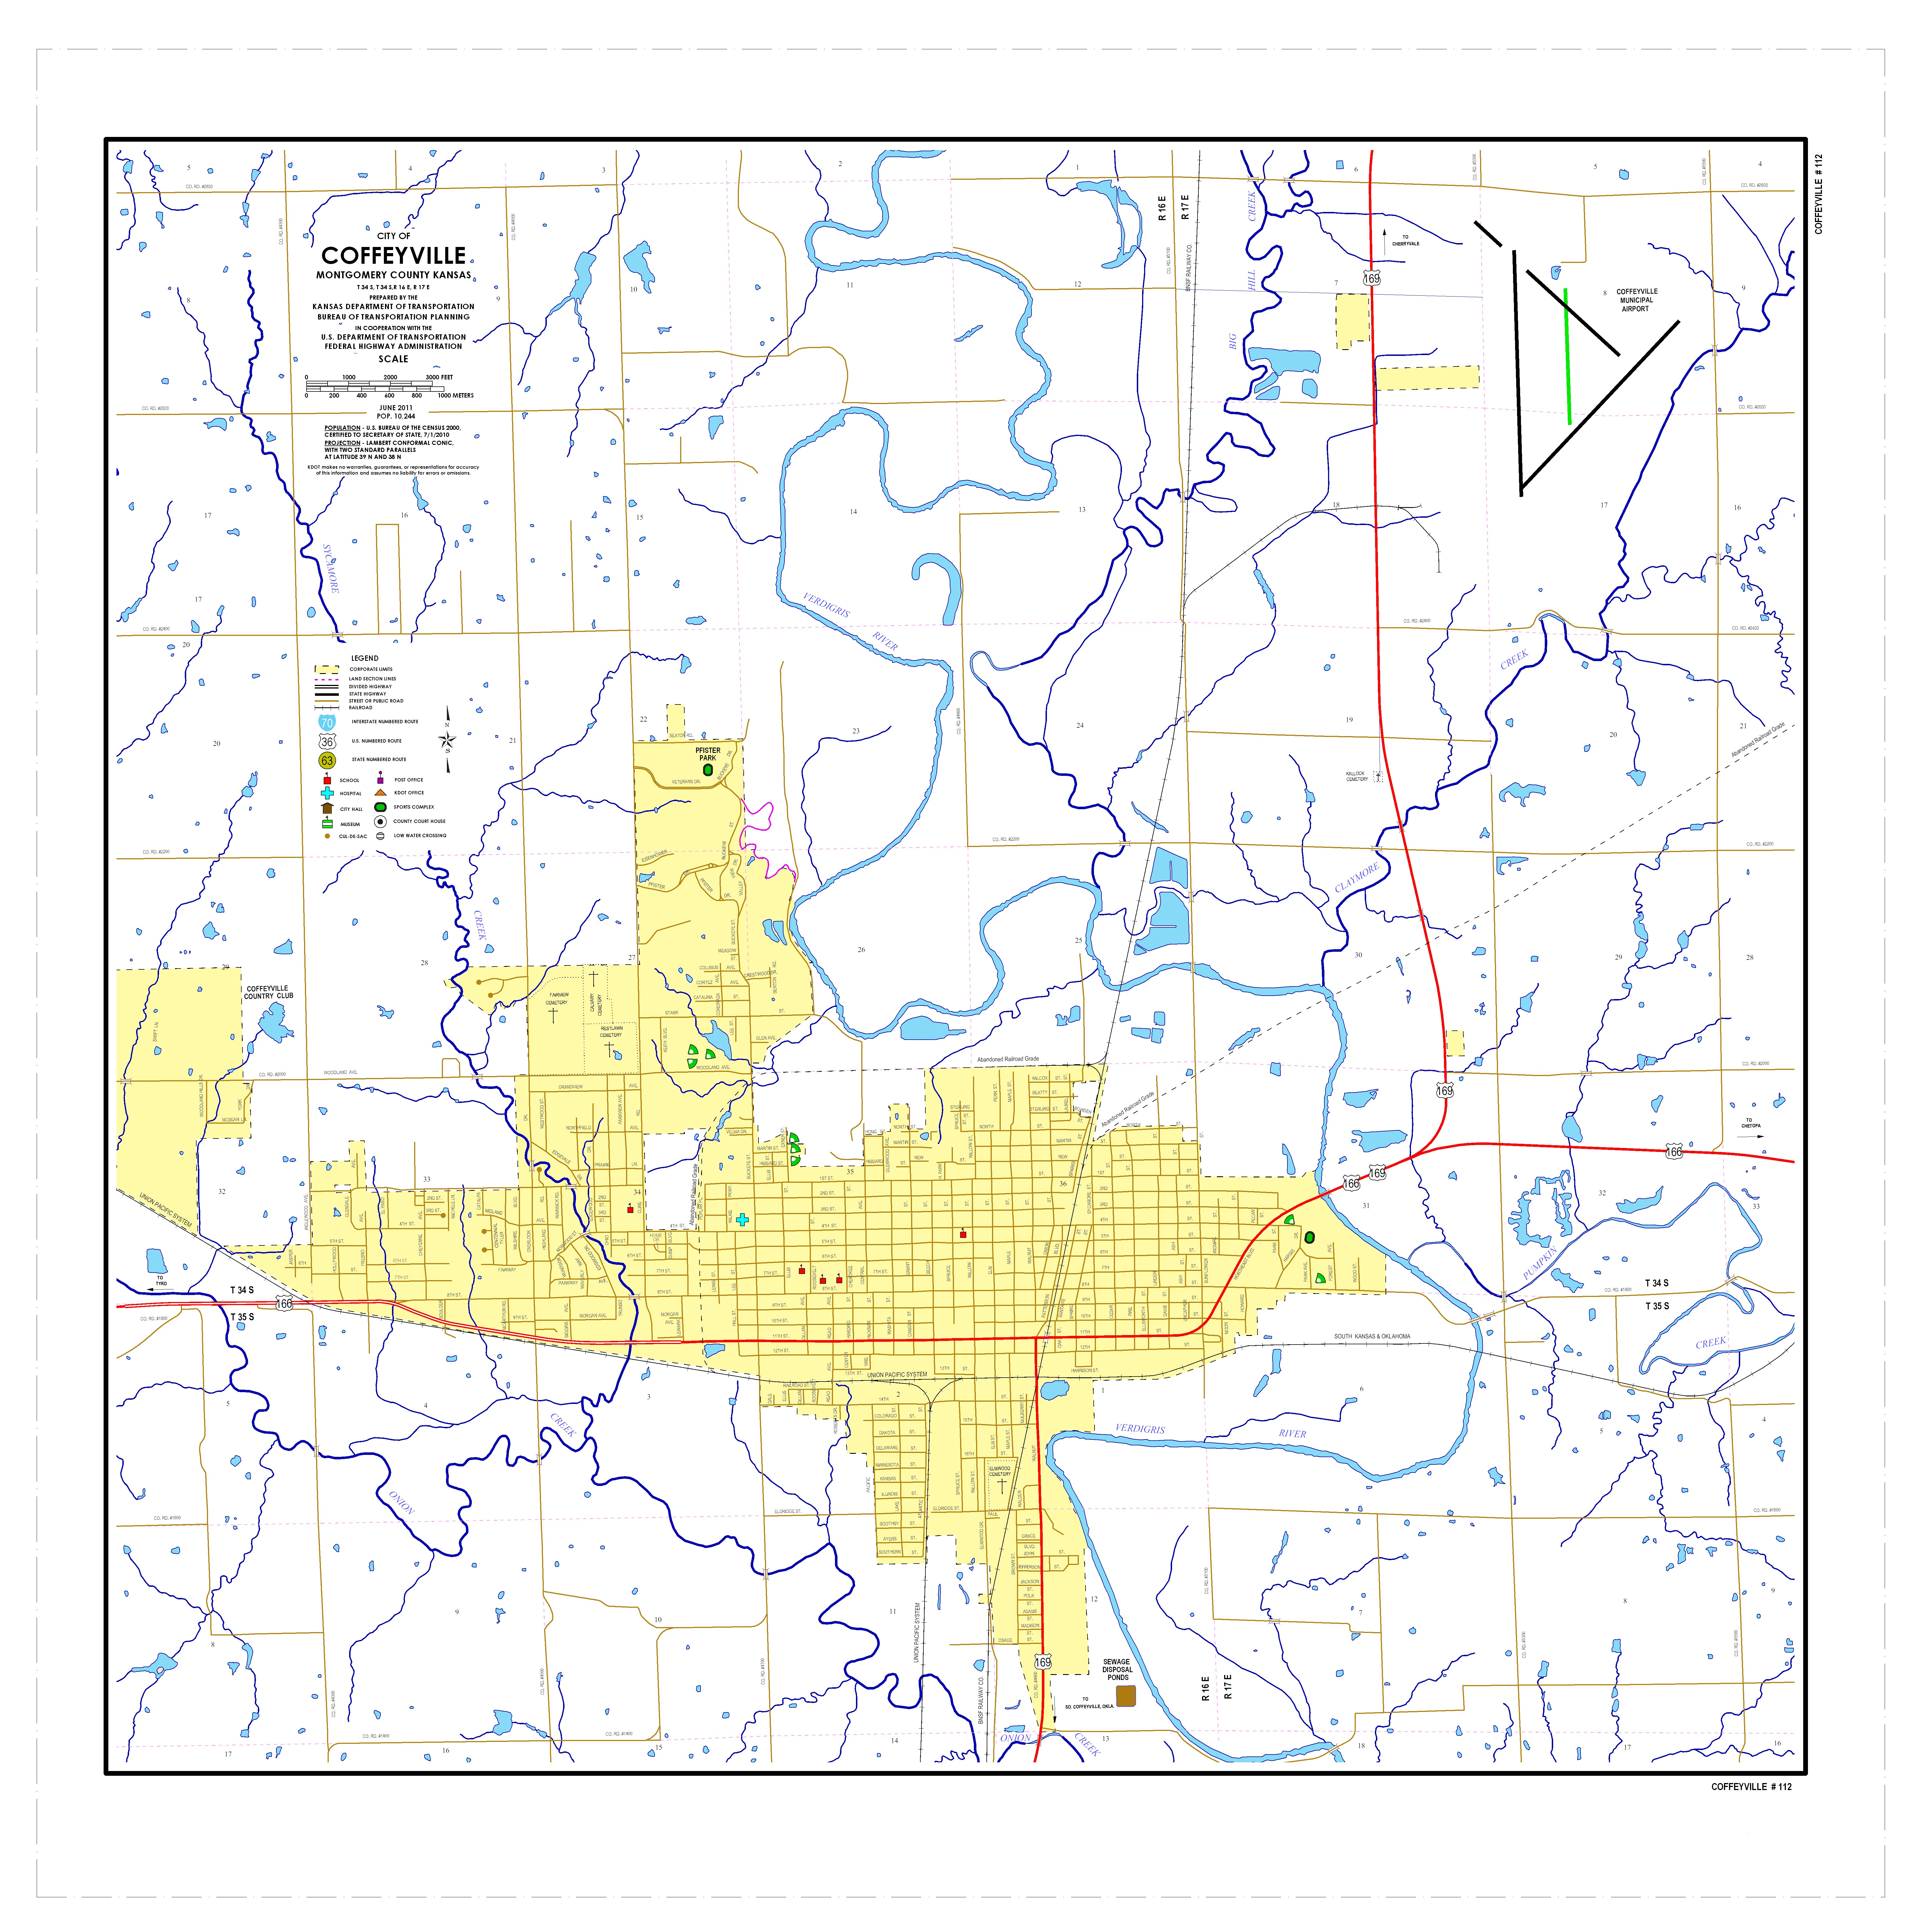 KDOT City Maps Sorted By City Name - Kansas highway map